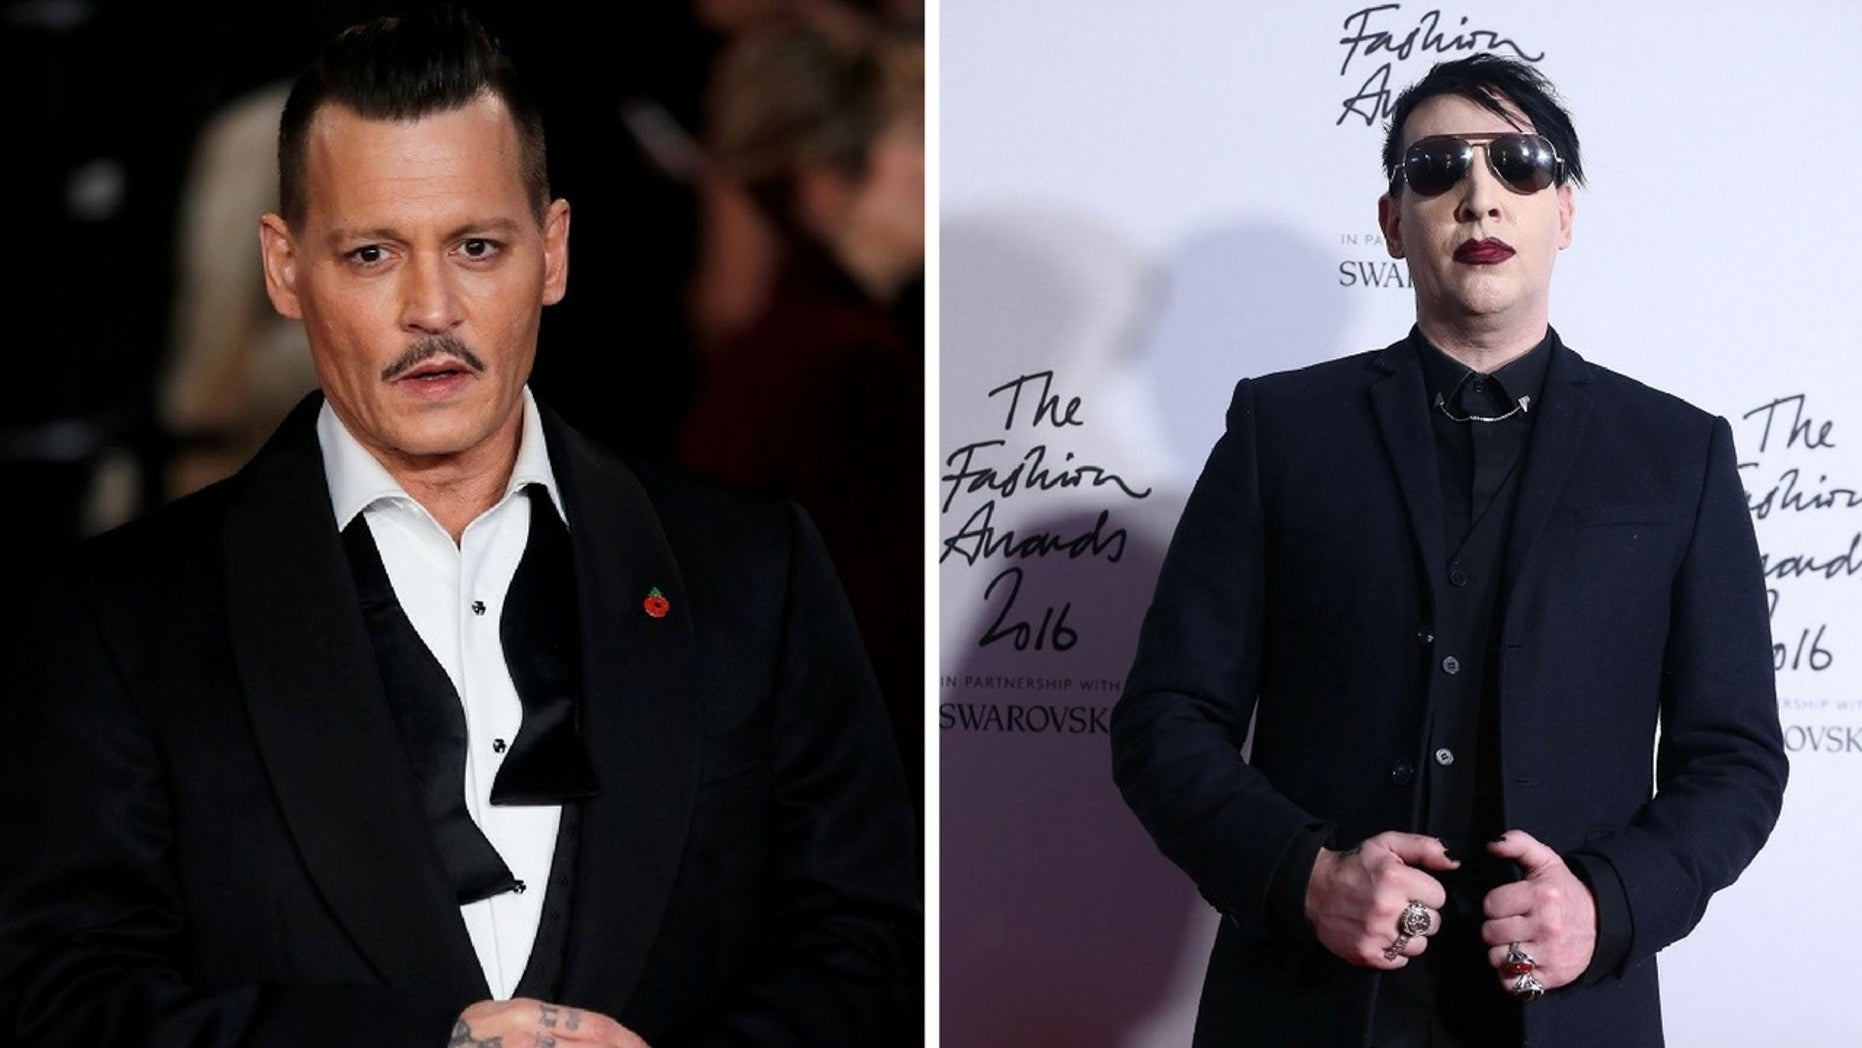 Marilyn Manson said Johnny Depp was considering joining his band.